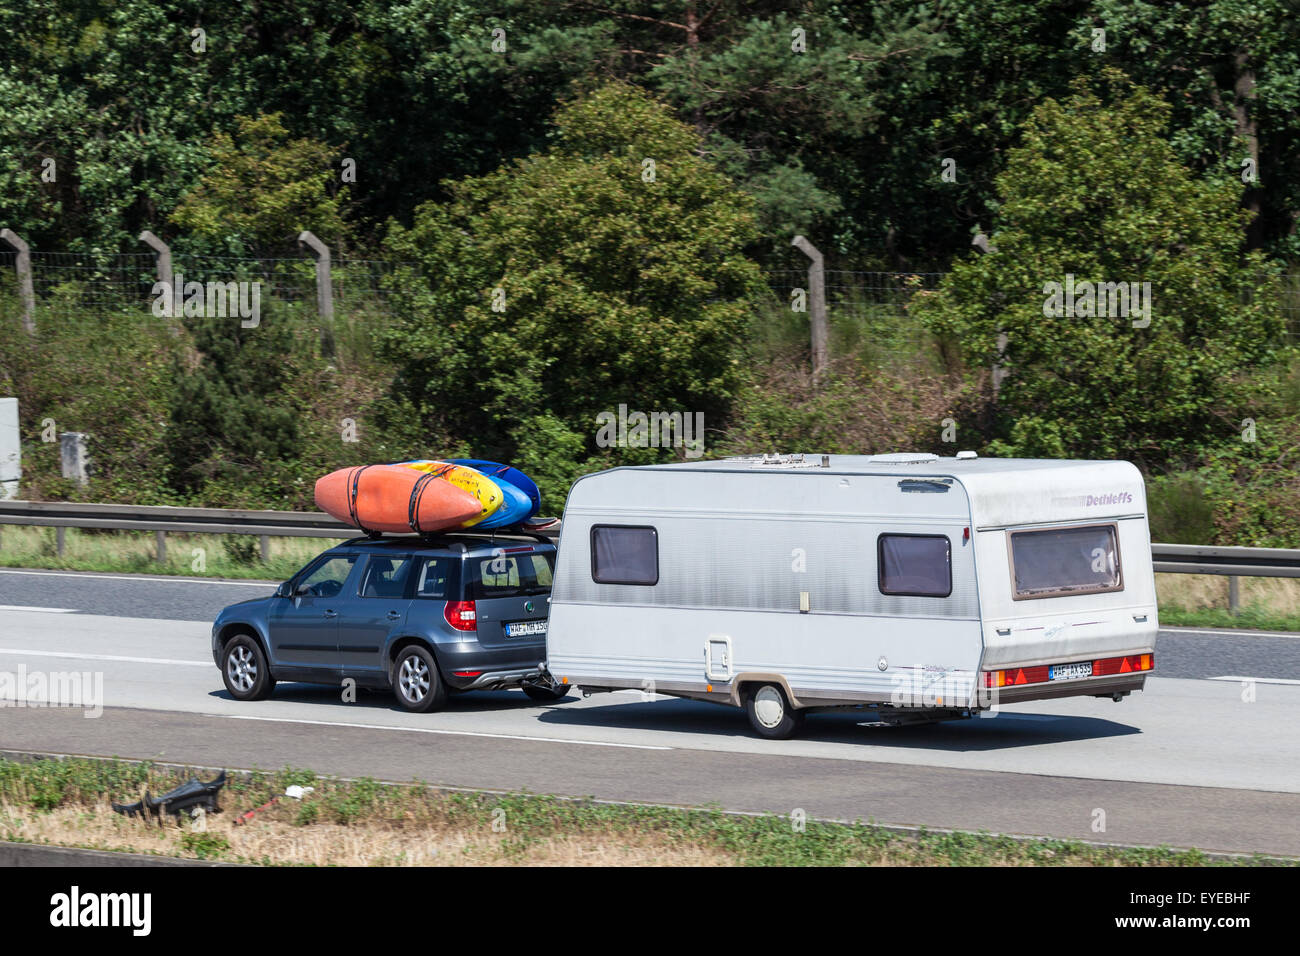 Skoda Yeti with an old caravan and kayaks on the roof - Stock Image